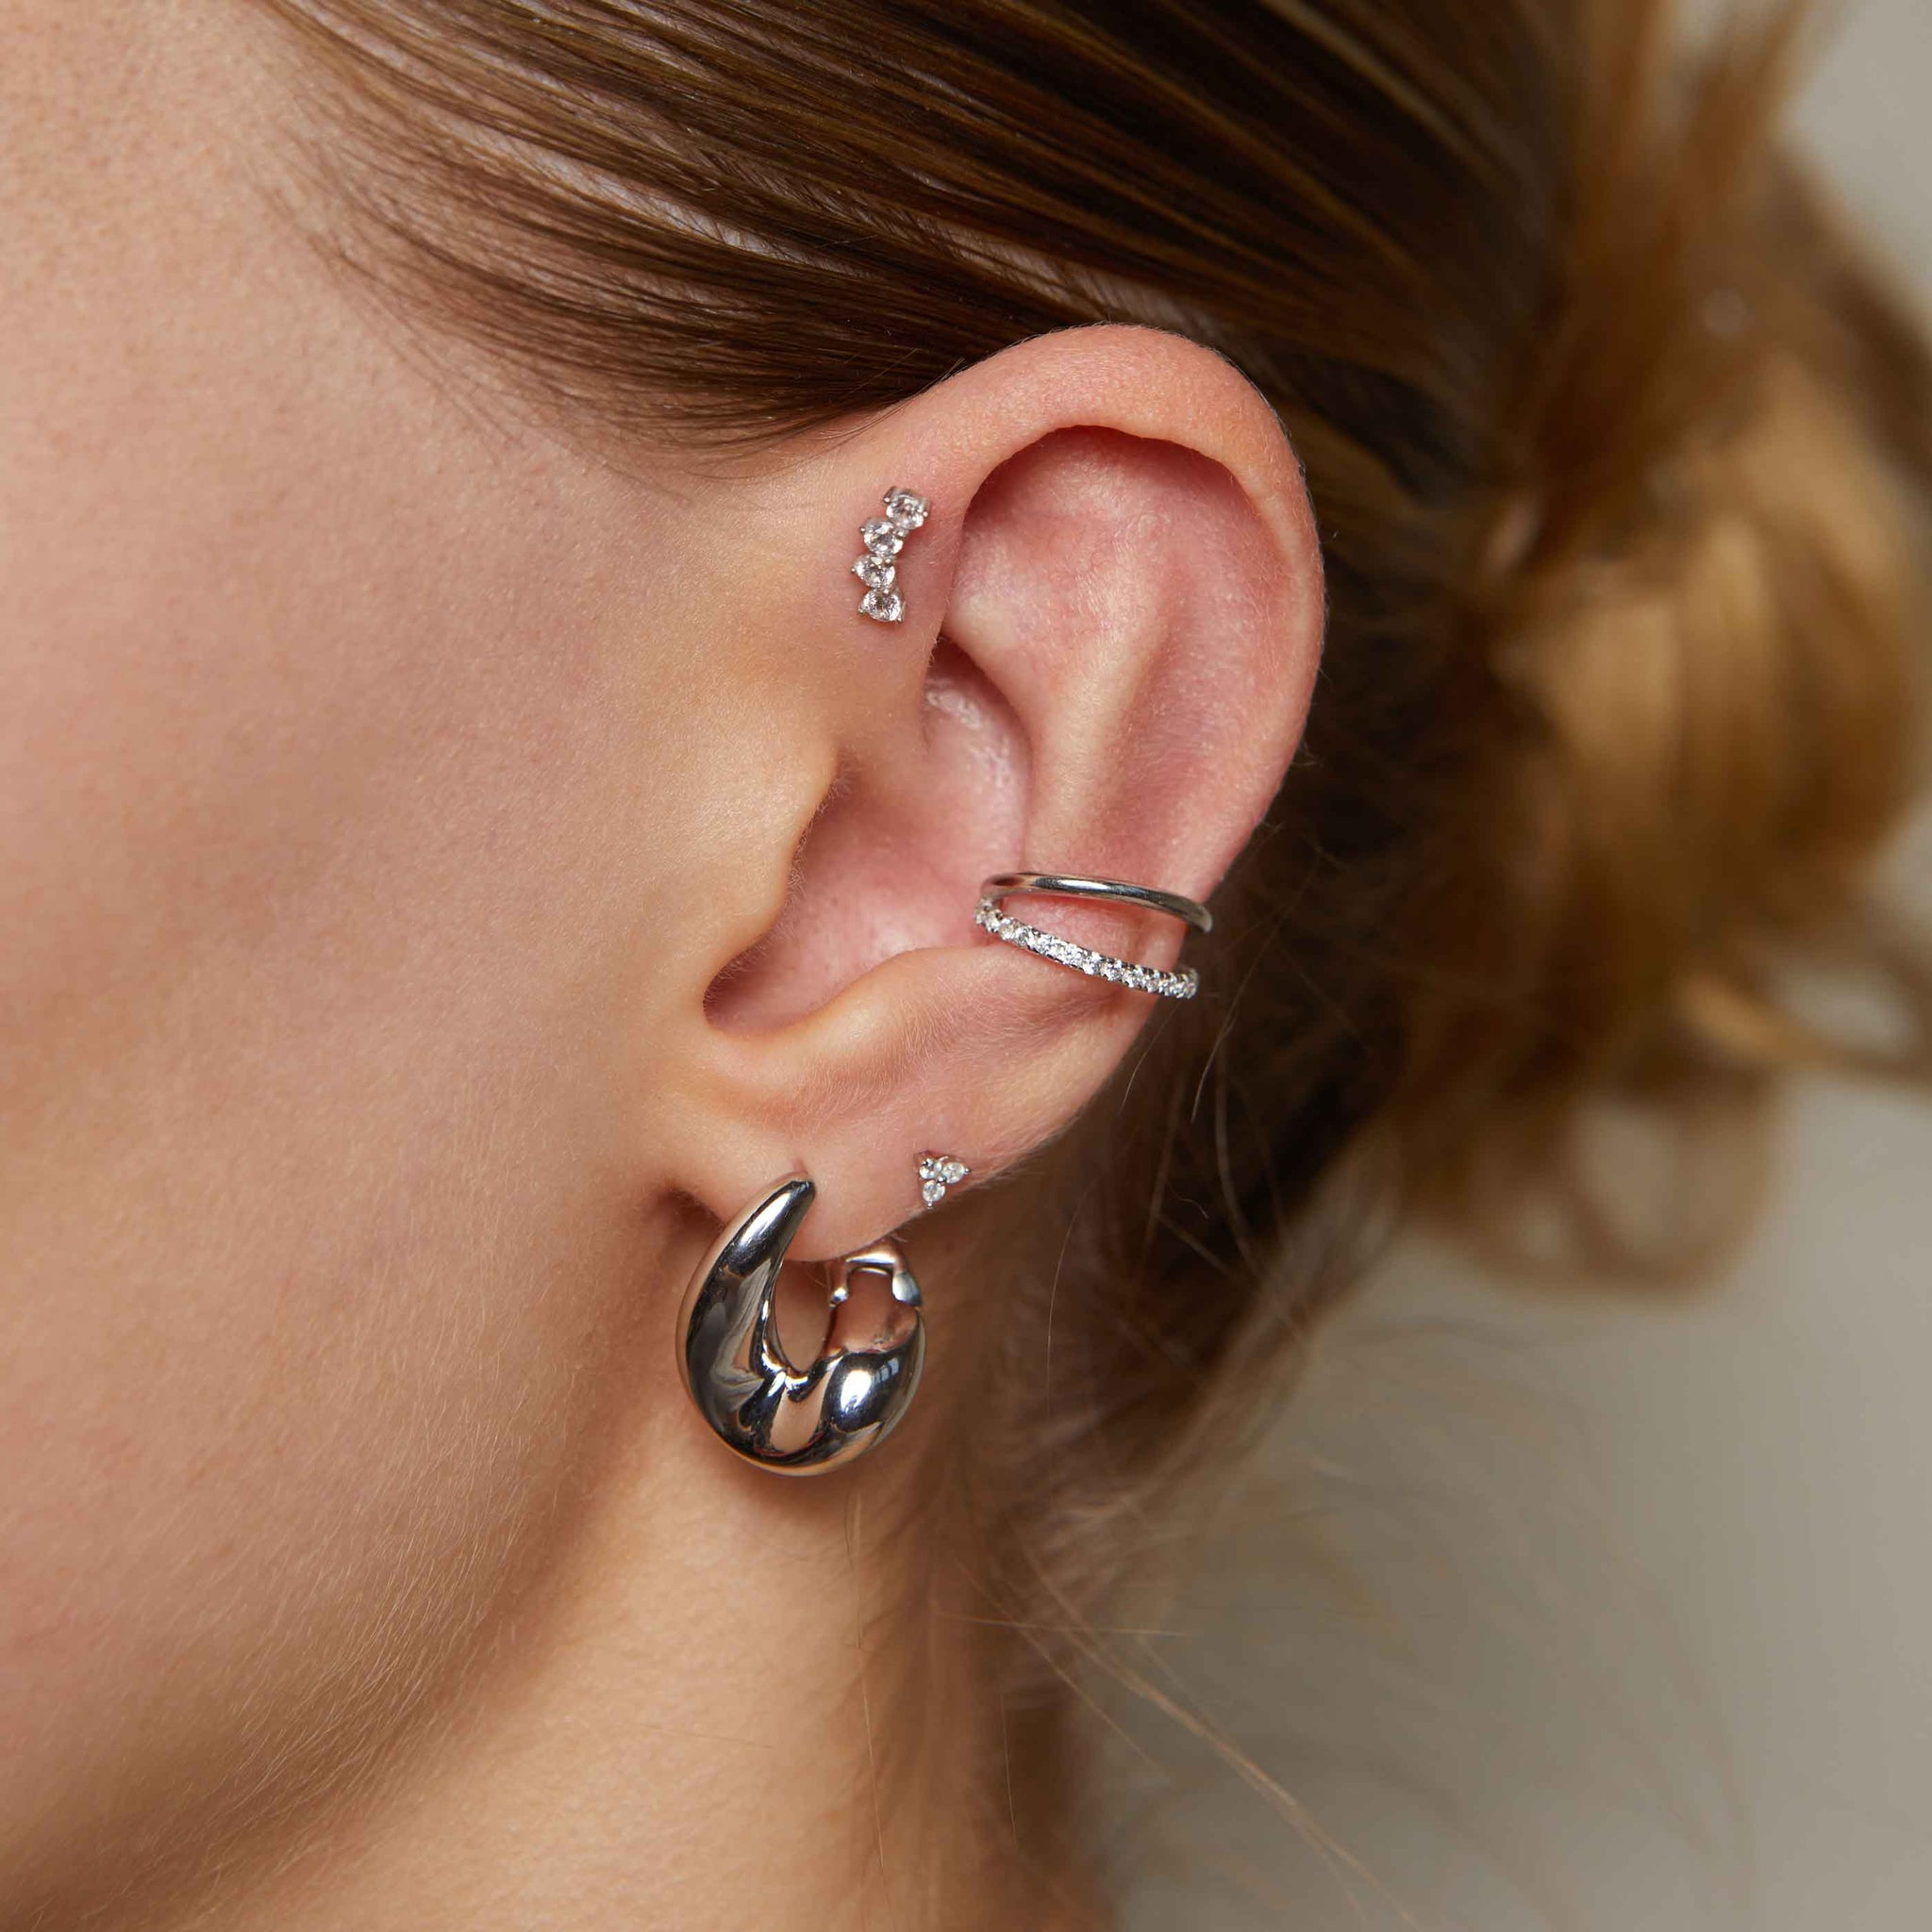 Illusion Crystal Ear Cuff in Silver worn with molten hoops and curved crystal barbell